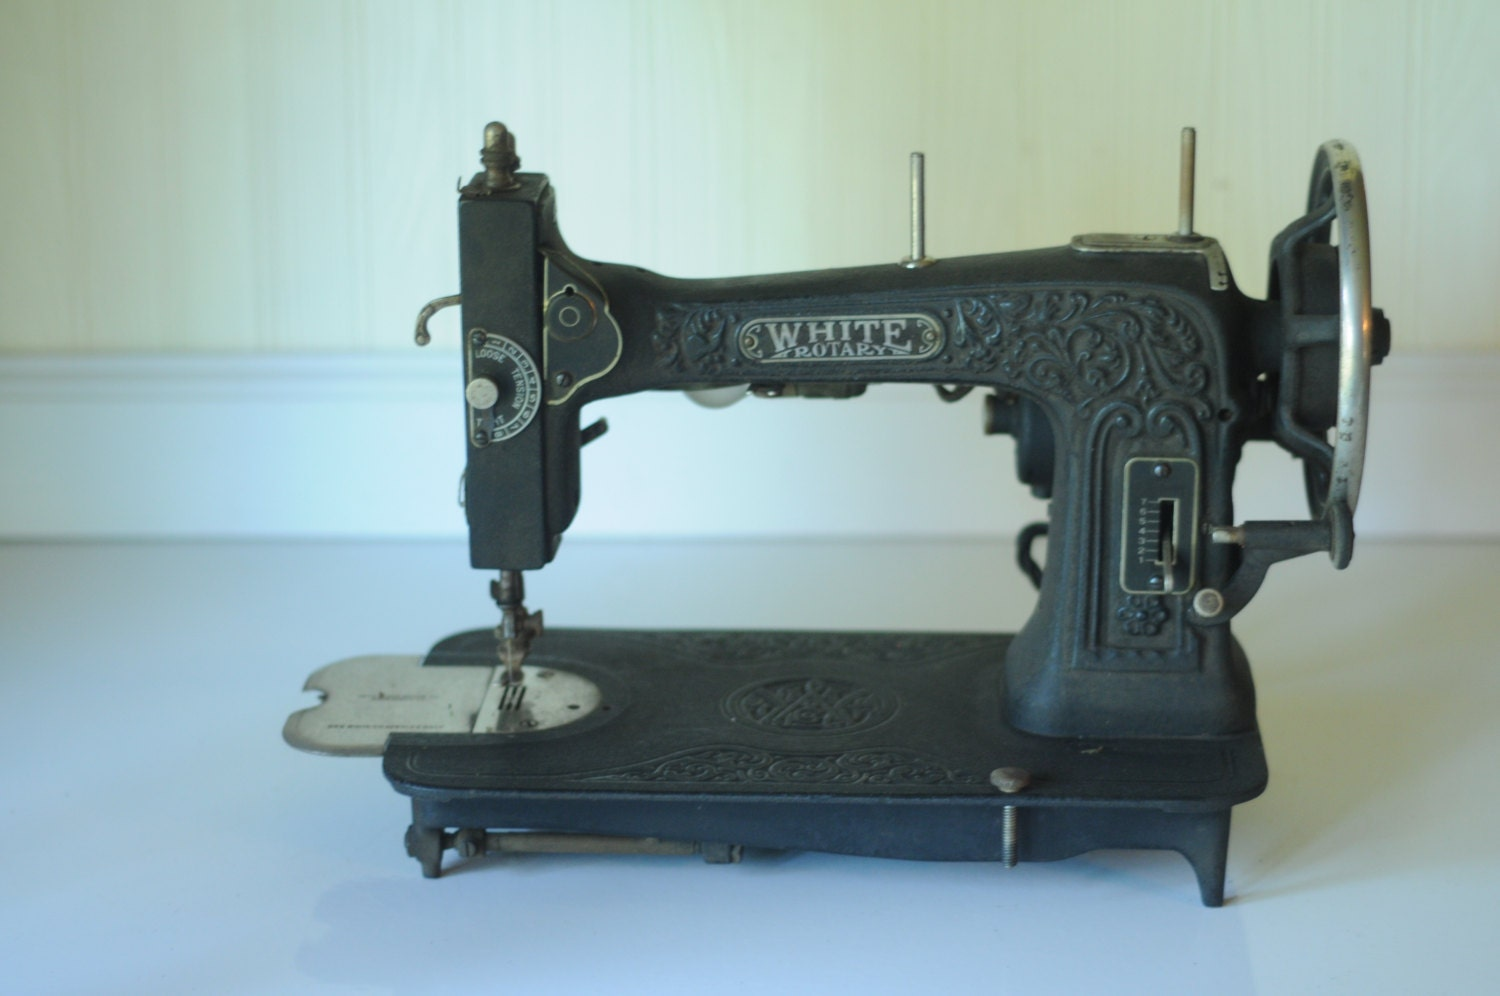 white rotary sewing machine